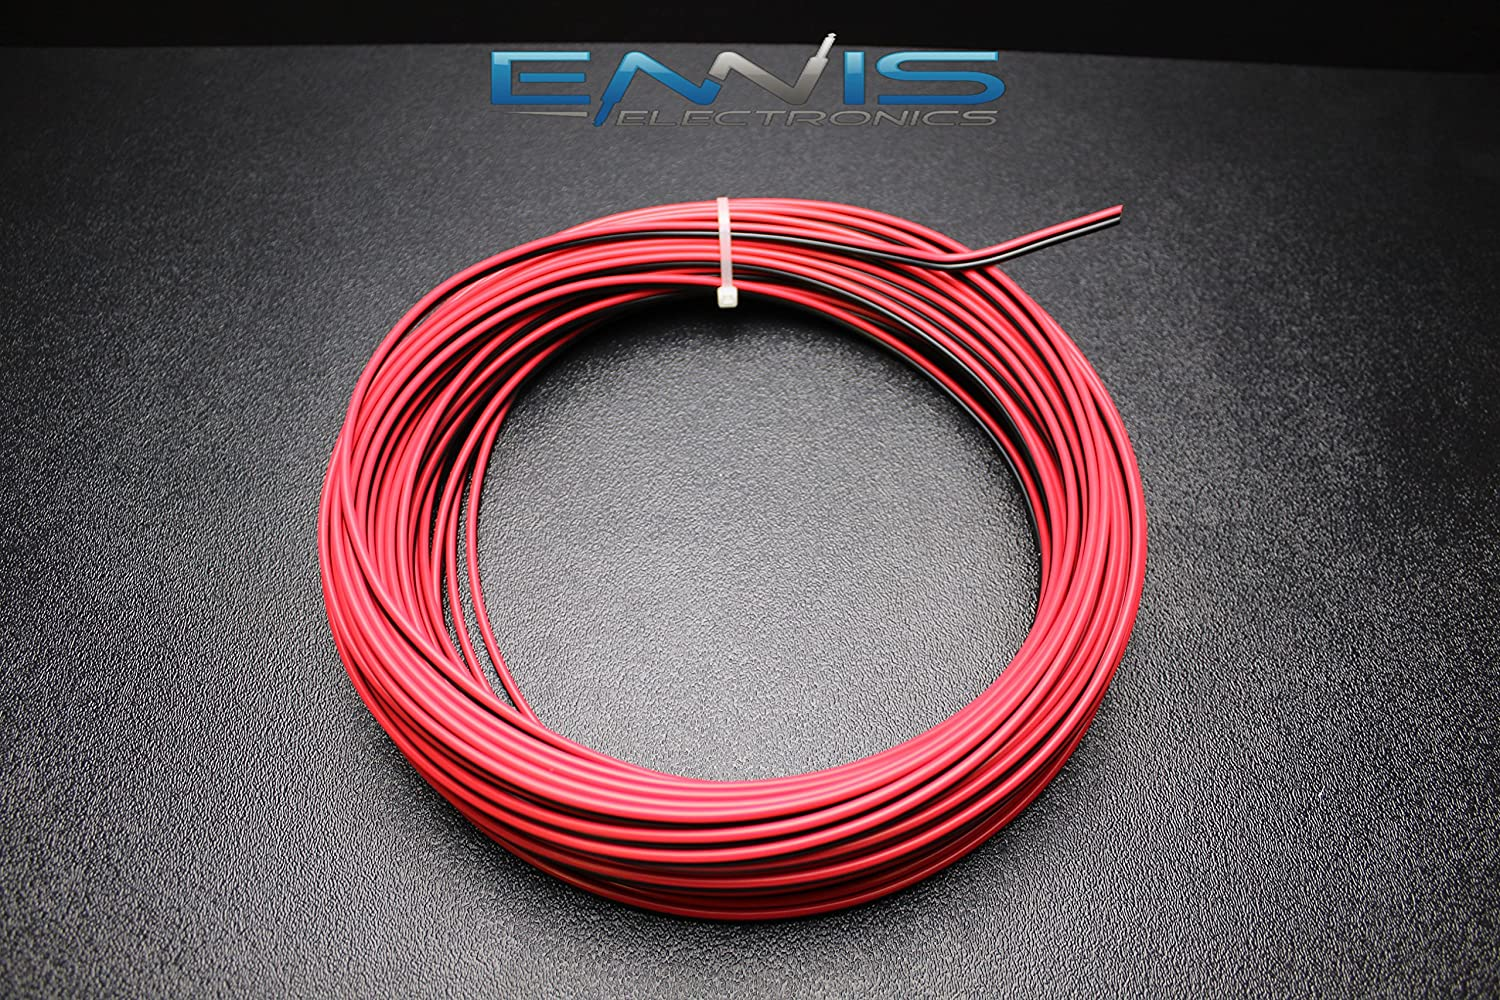 16 GAUGE 25 FT RED BLACK SPEAKER ZIP WIRE AWG CABLE POWER STRANDED COPPER CLAD BY ENNIS ELECTRONICS